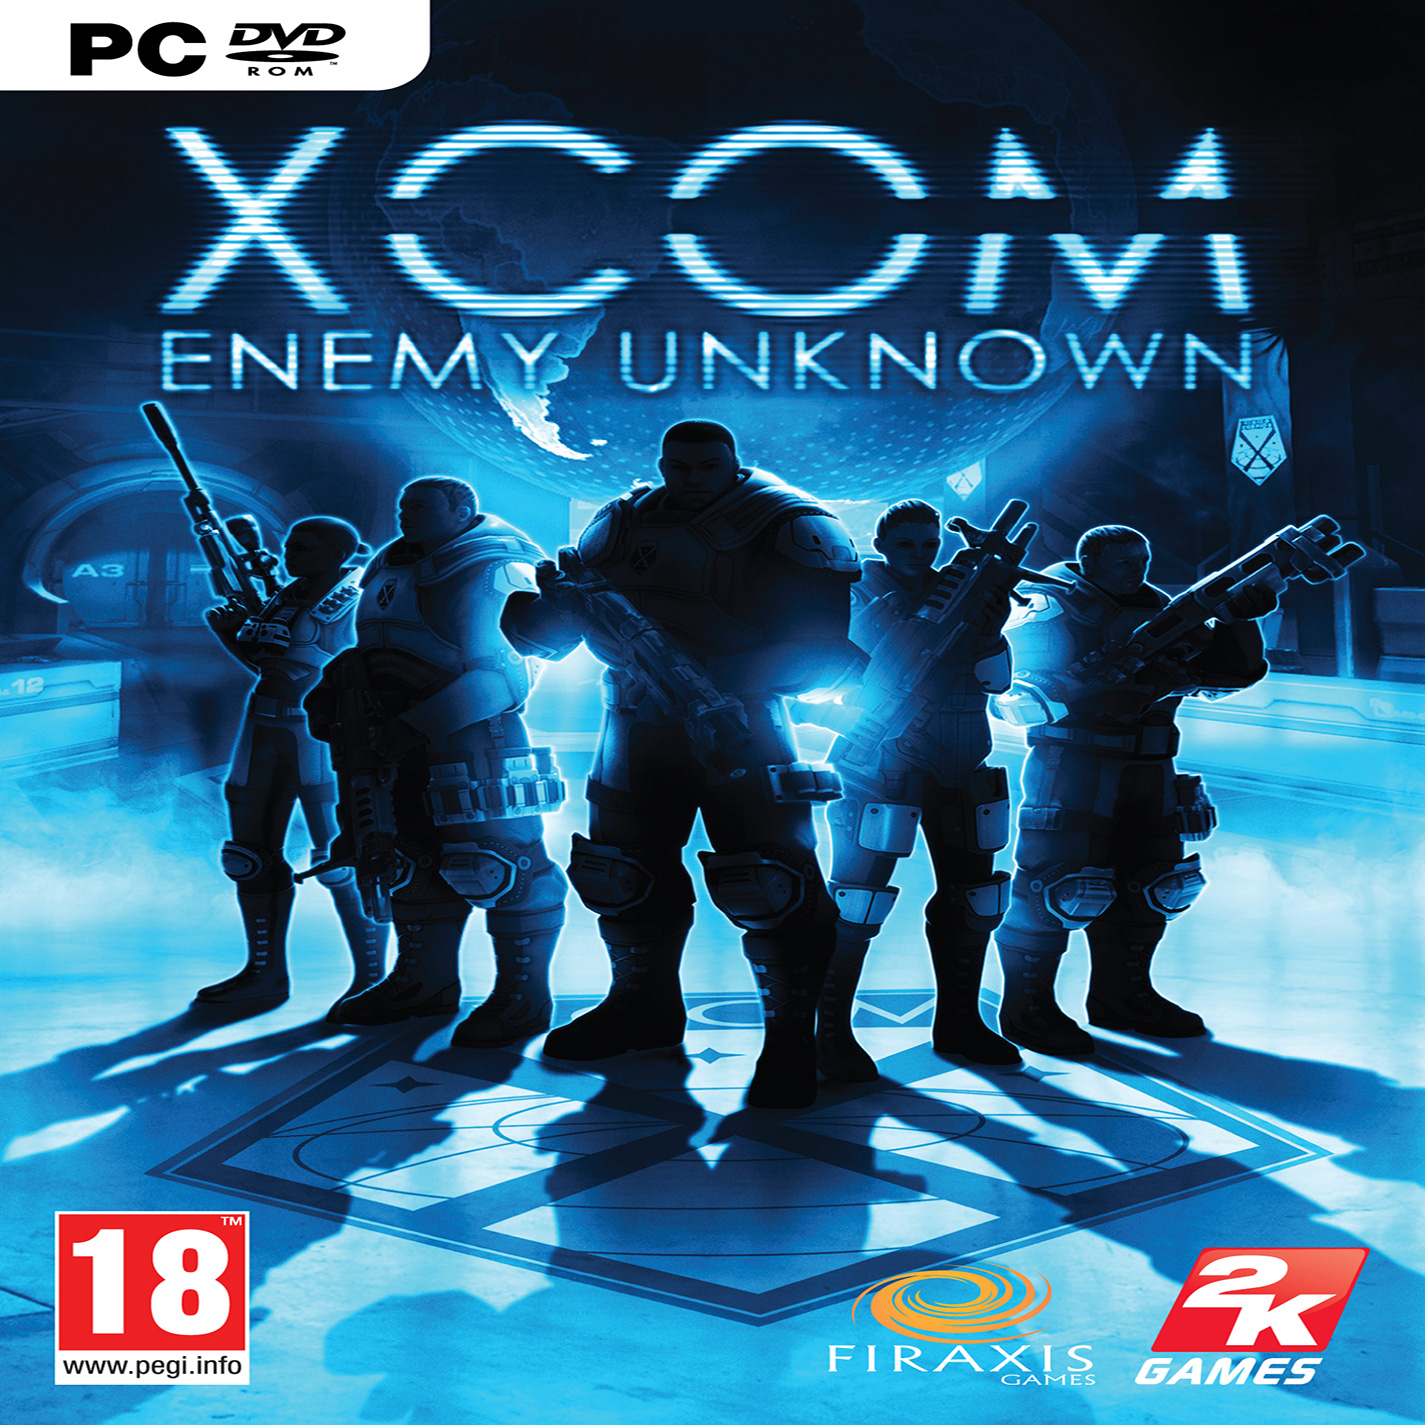 We first heard reports of xcom enemy unknown plus being rated on a for north america, and